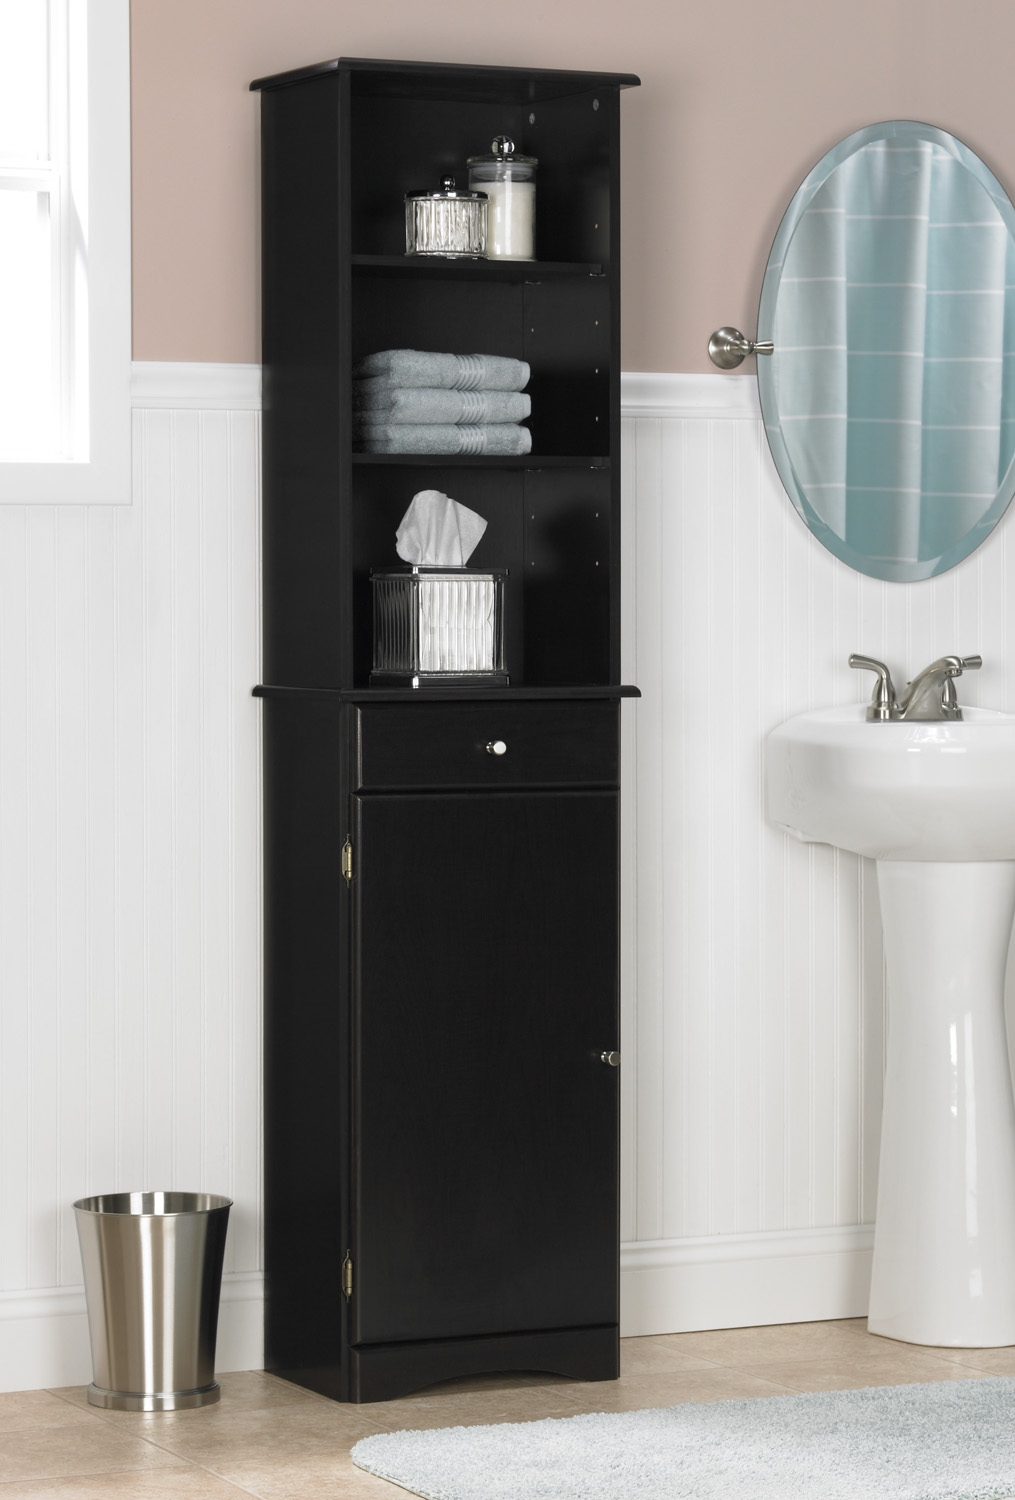 Bath Storage Cabinets With Shelves